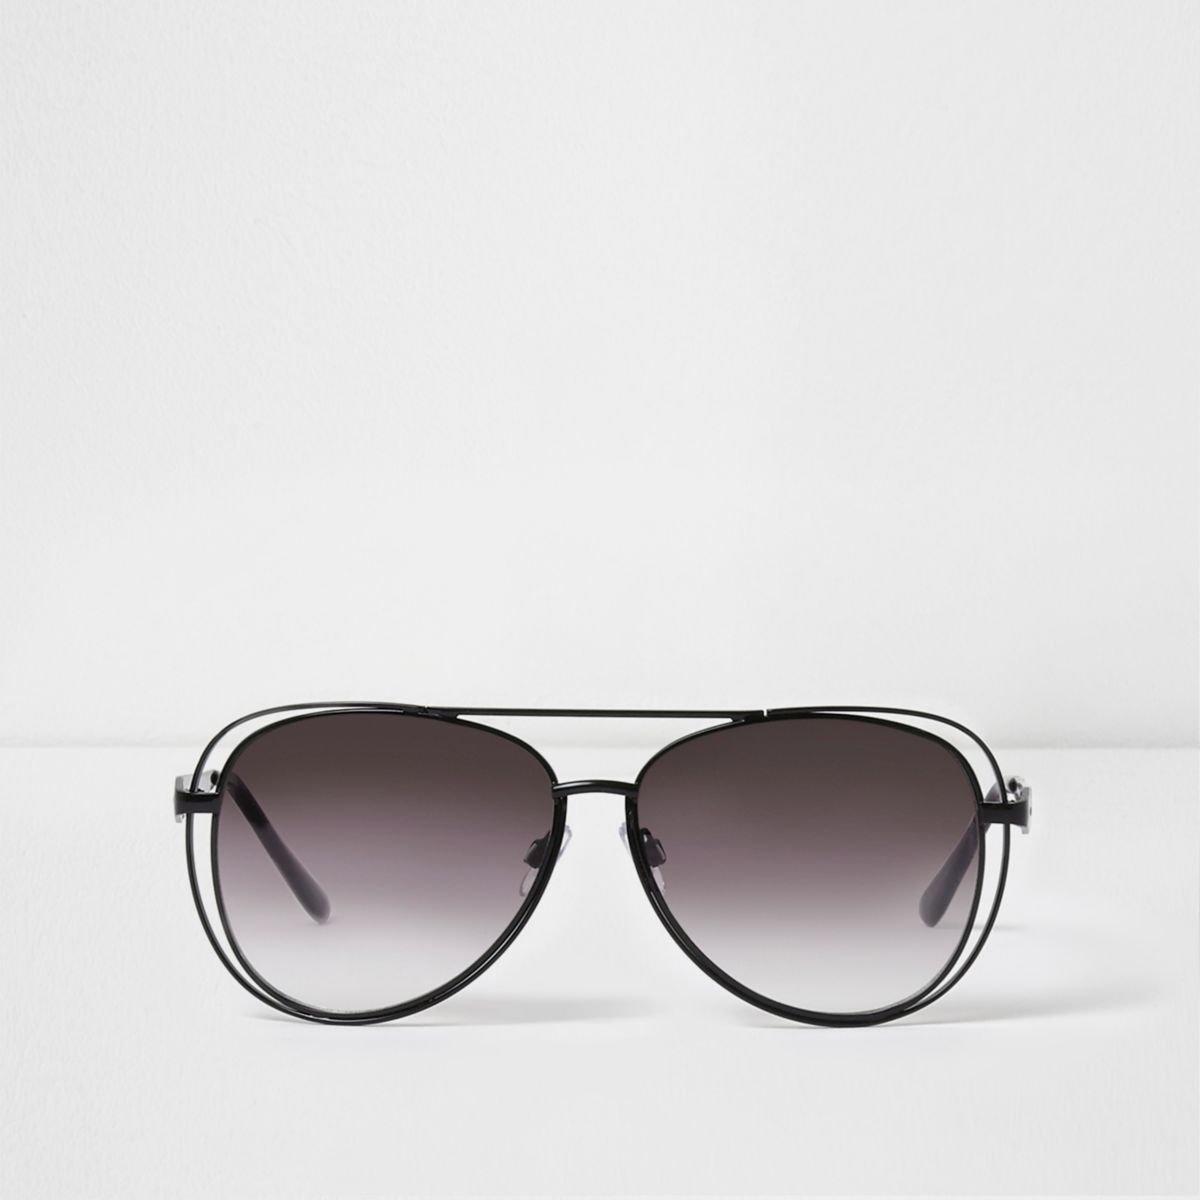 Black metal double rim aviator sunglasses